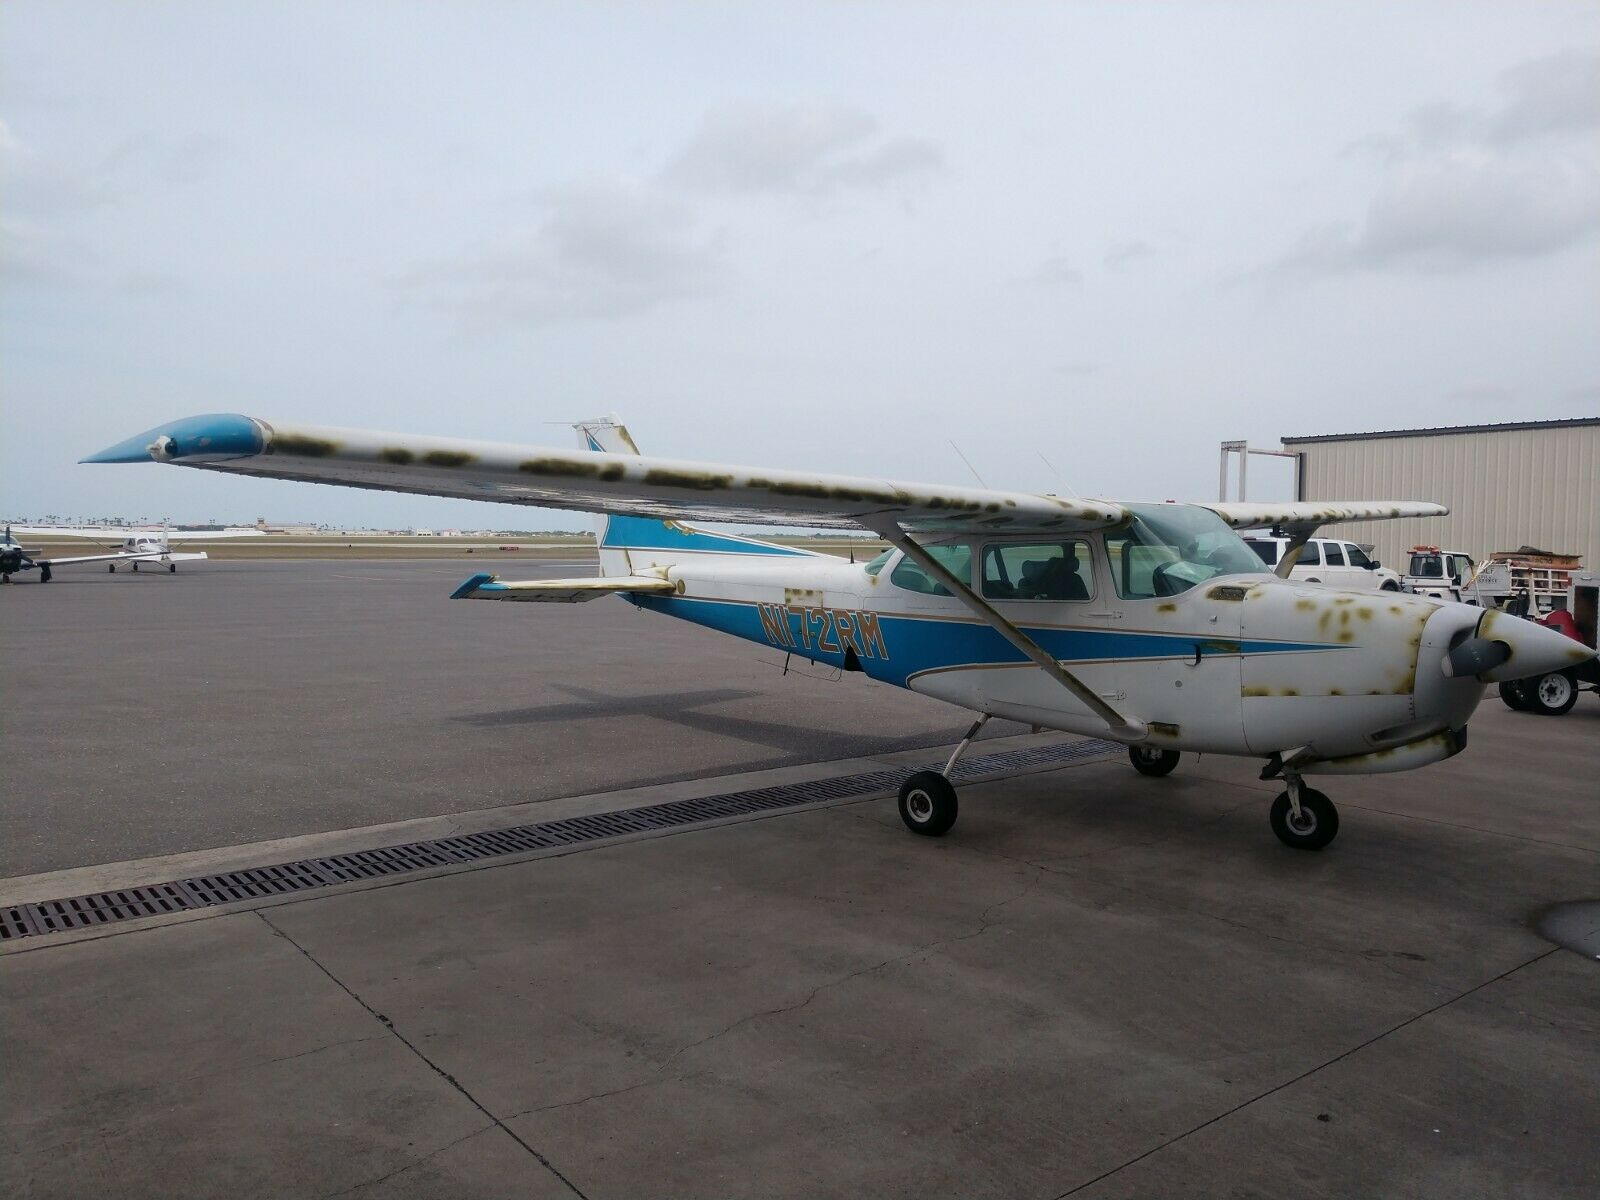 Project 1978 Cessna 172rg aircraft